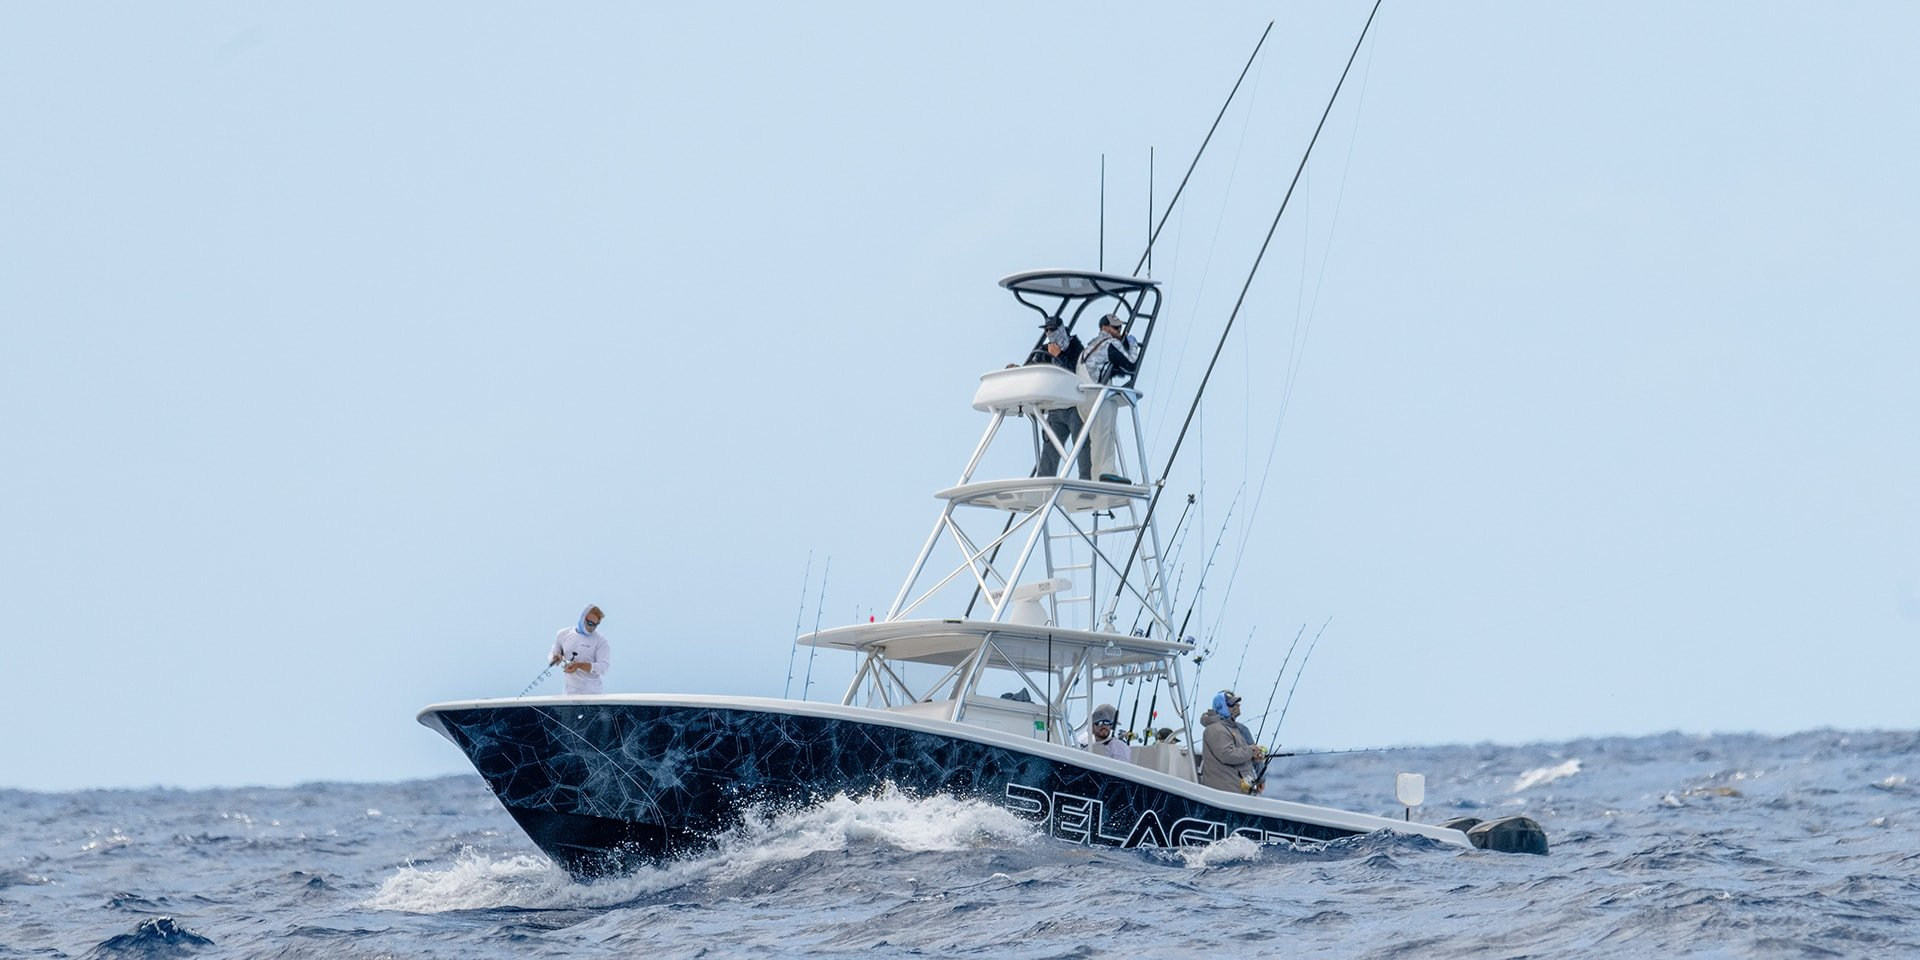 Pelagic 305 Remix Fishing Team invincible boats